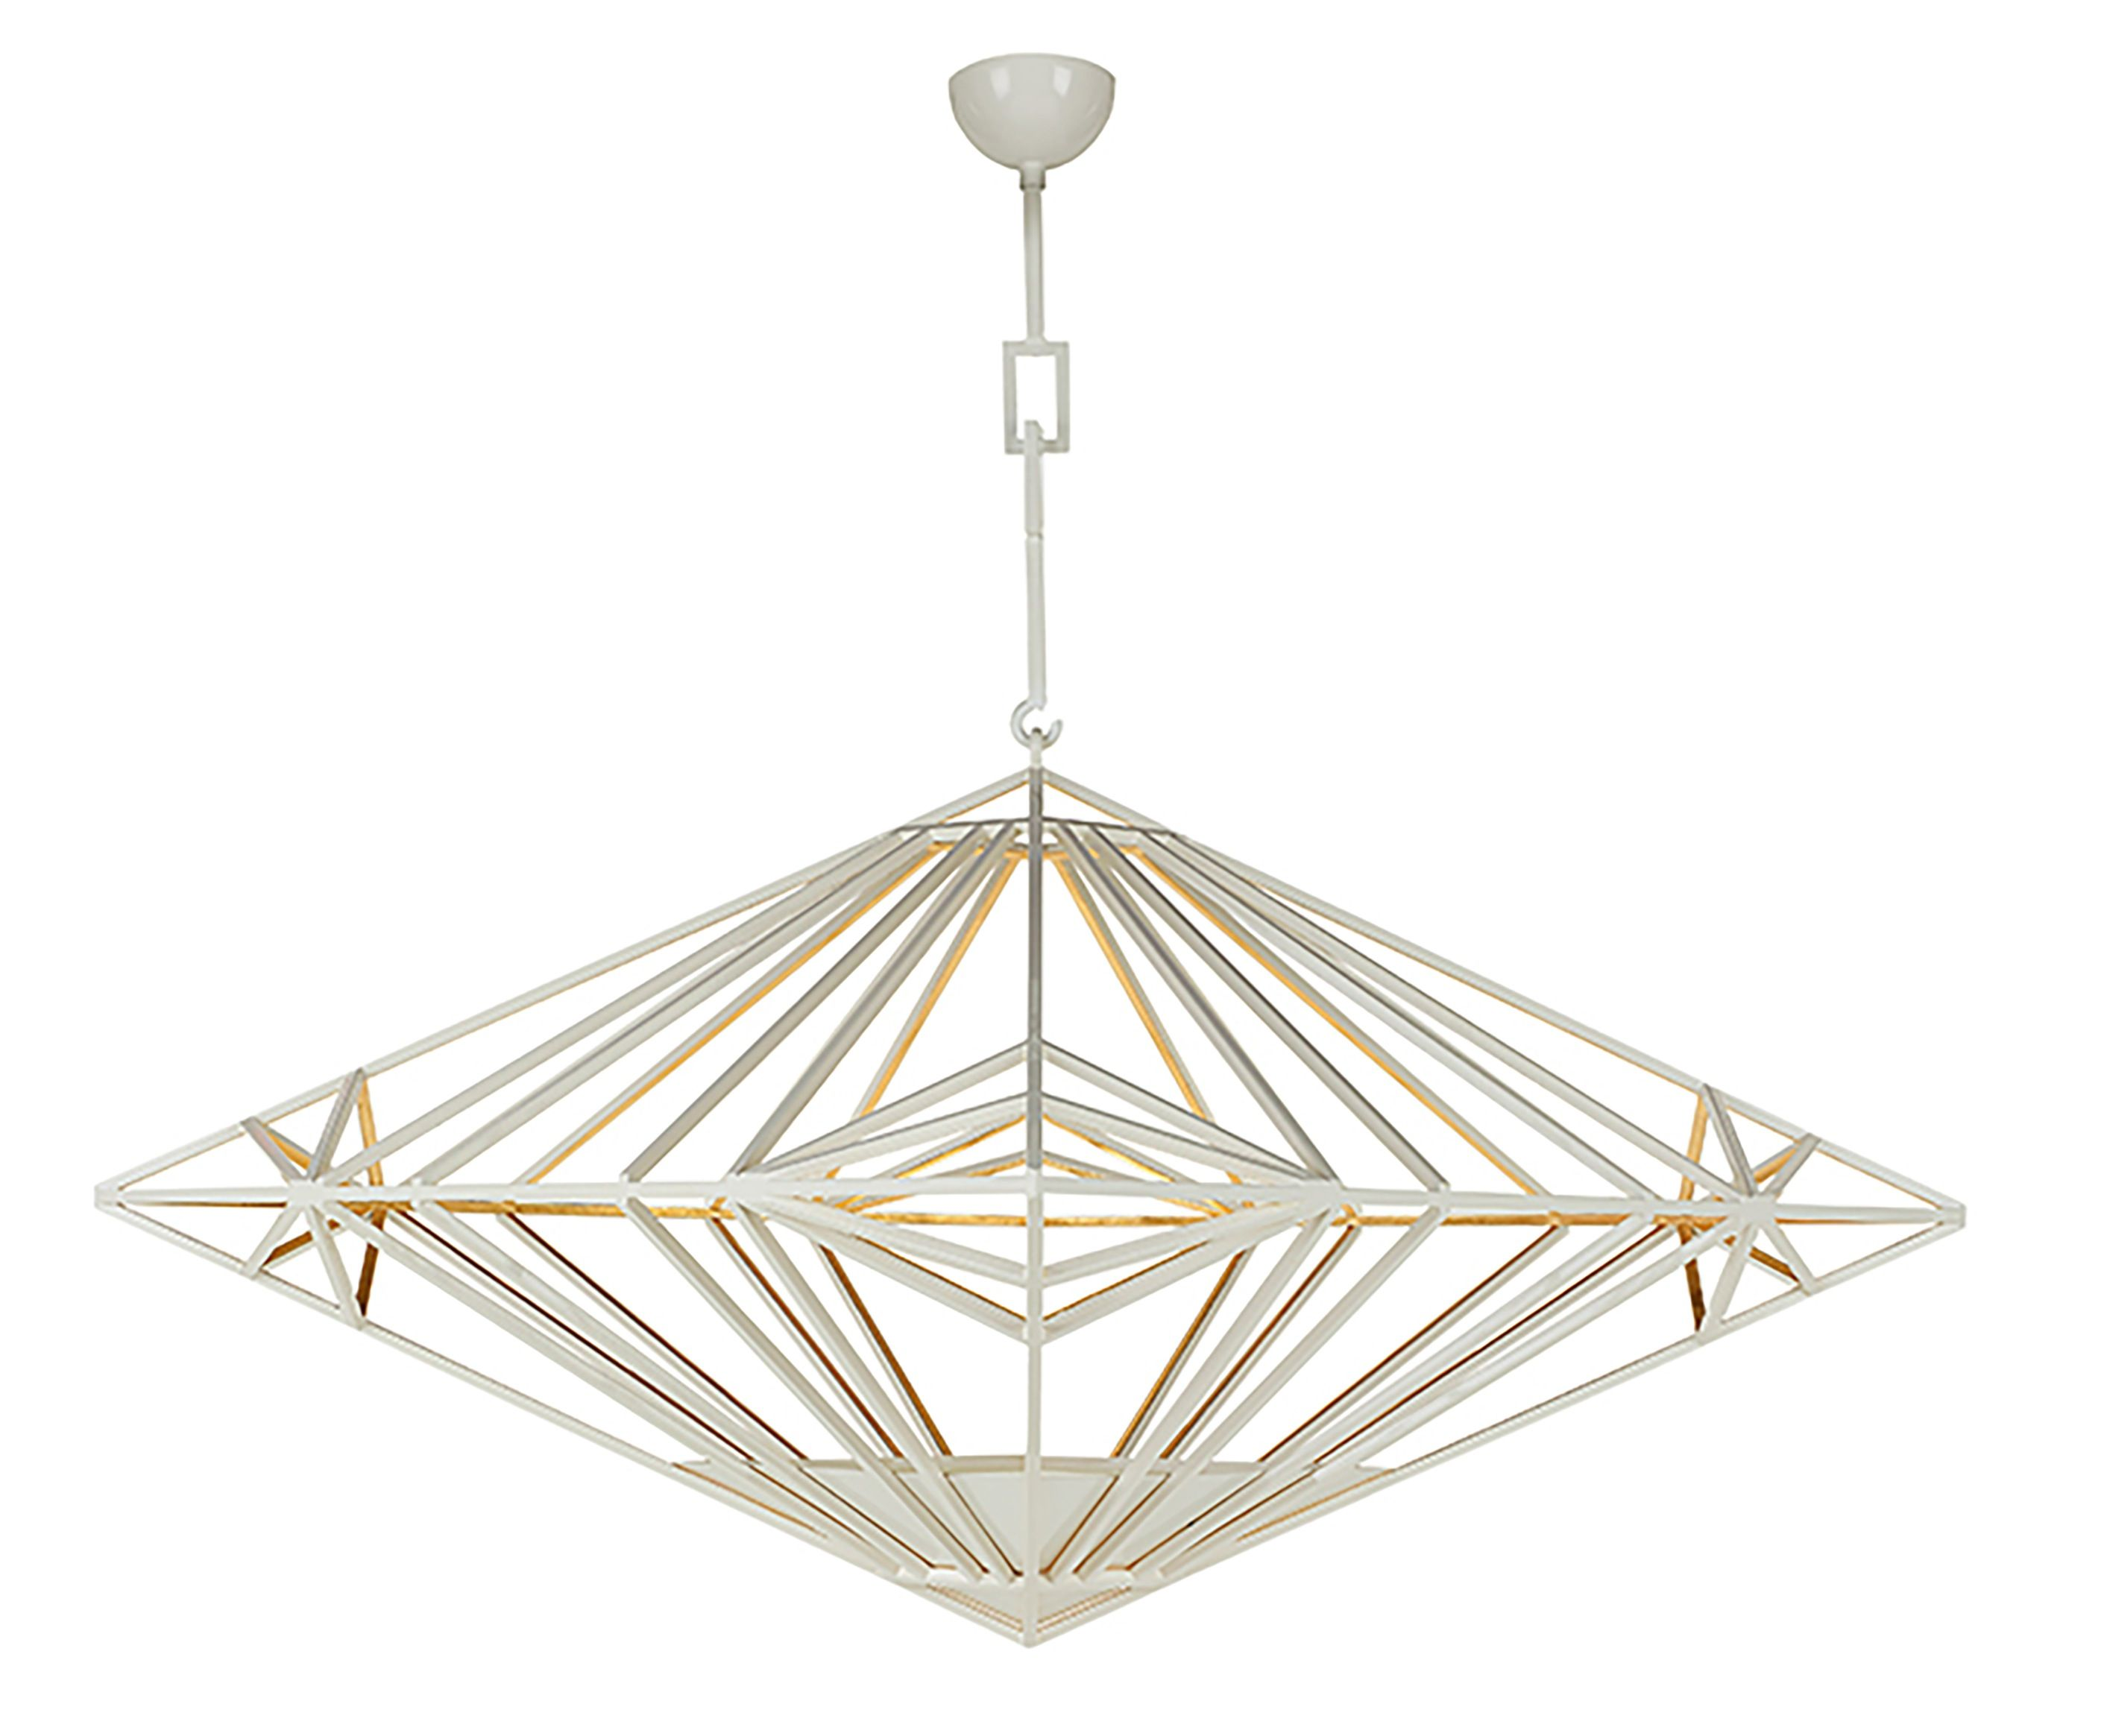 usona lighting. Dering Hall Usona Lighting